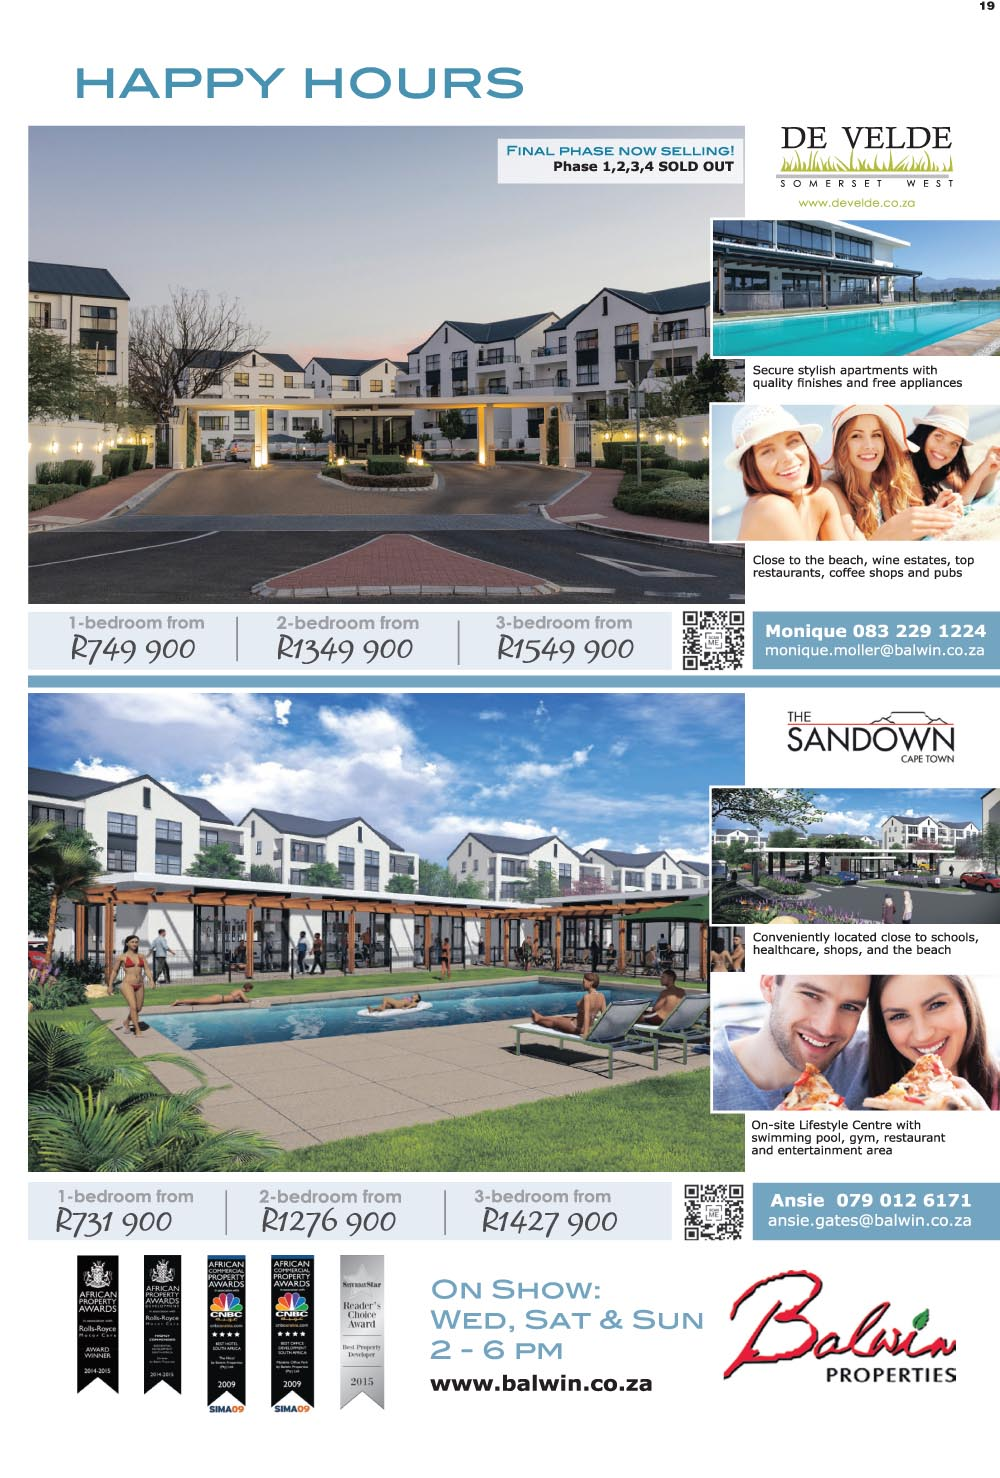 You are browsing images from the article: Property Selection 27 January 2016